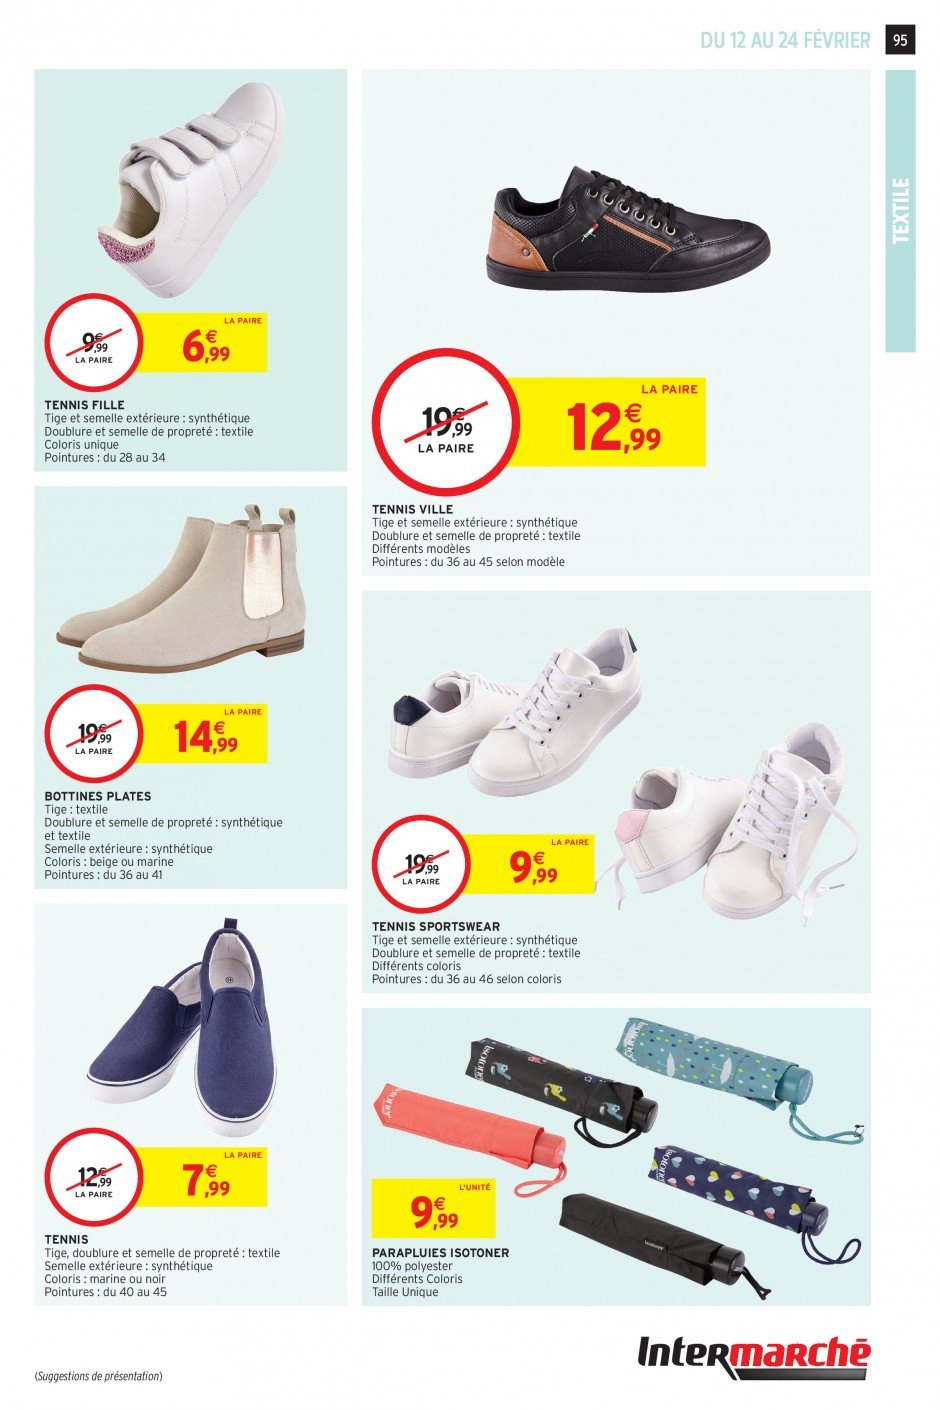 Catalogue Intermarché - 12.02.2019 - 24.02.2019. Page 93.